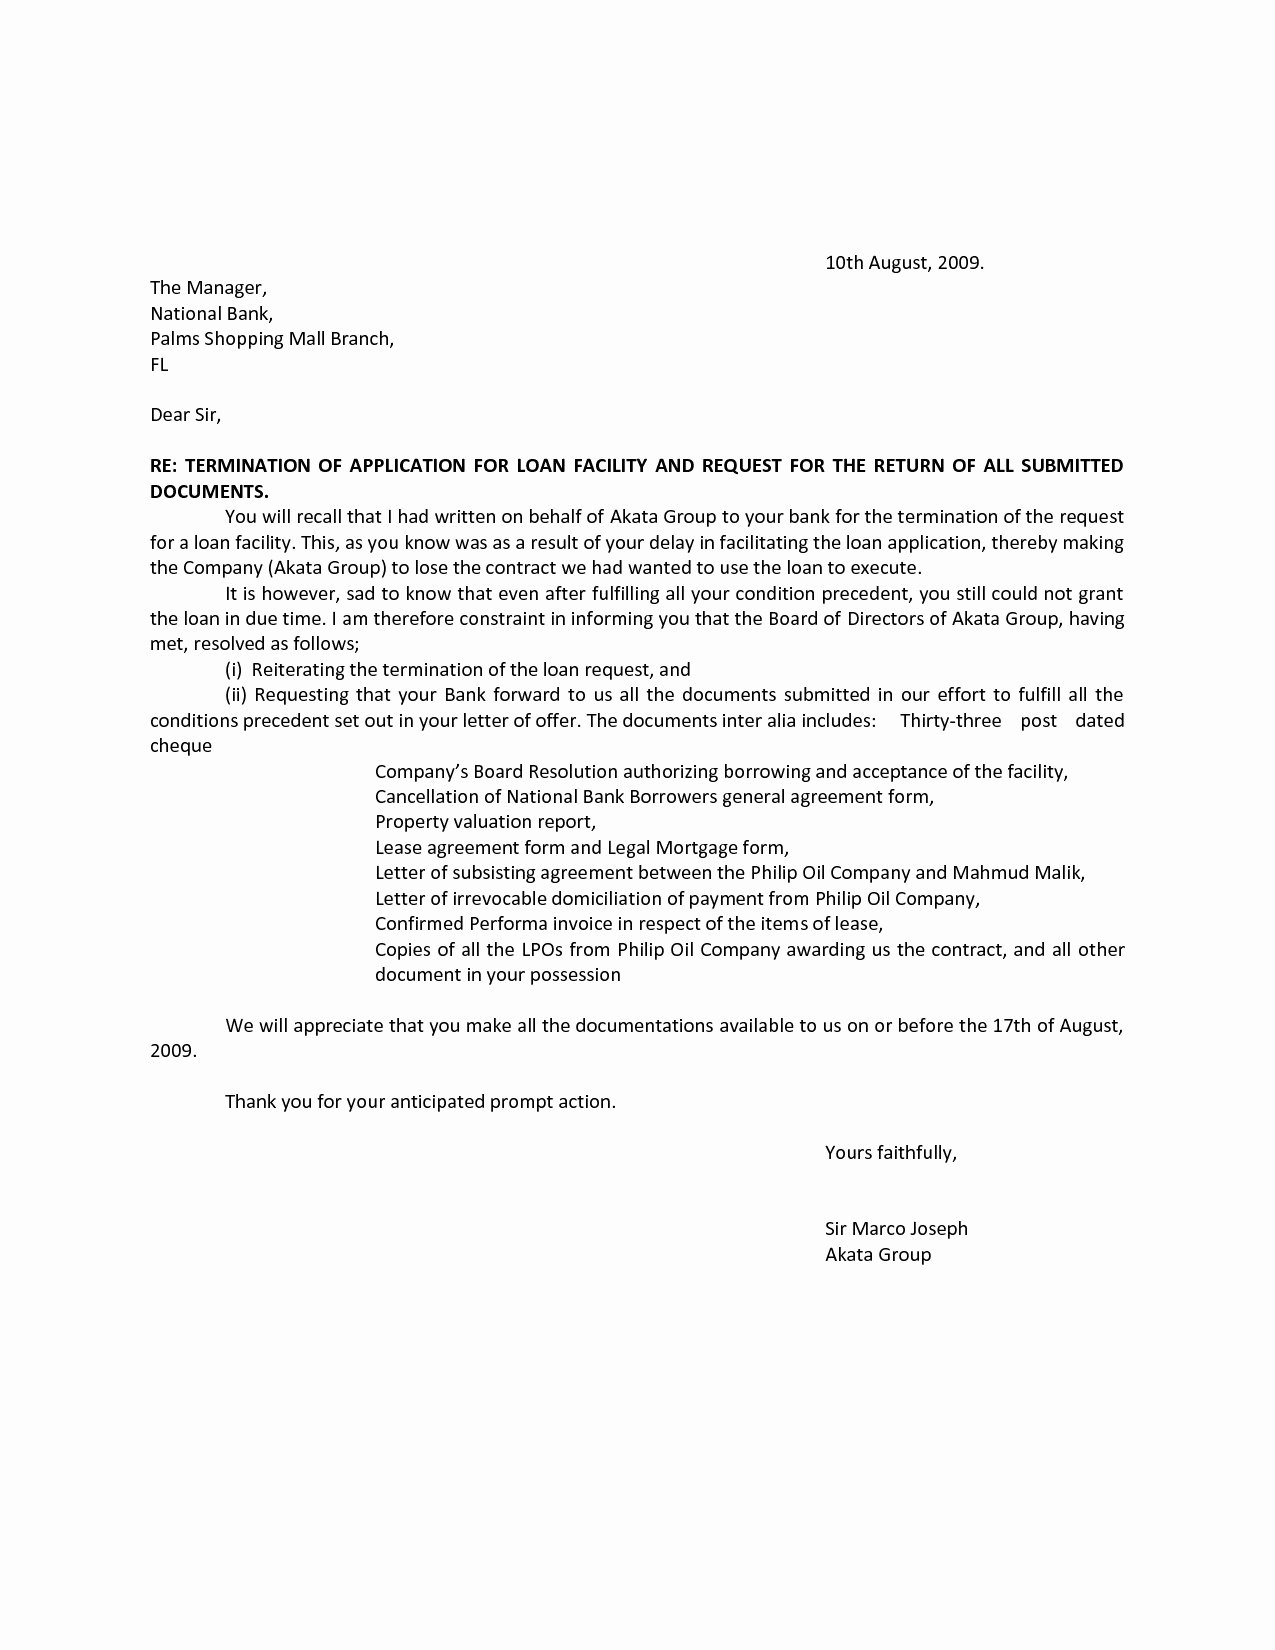 Simple Vendor Agreement Template Lovely Sample Vendor Contract Letter Examples for Services Simple